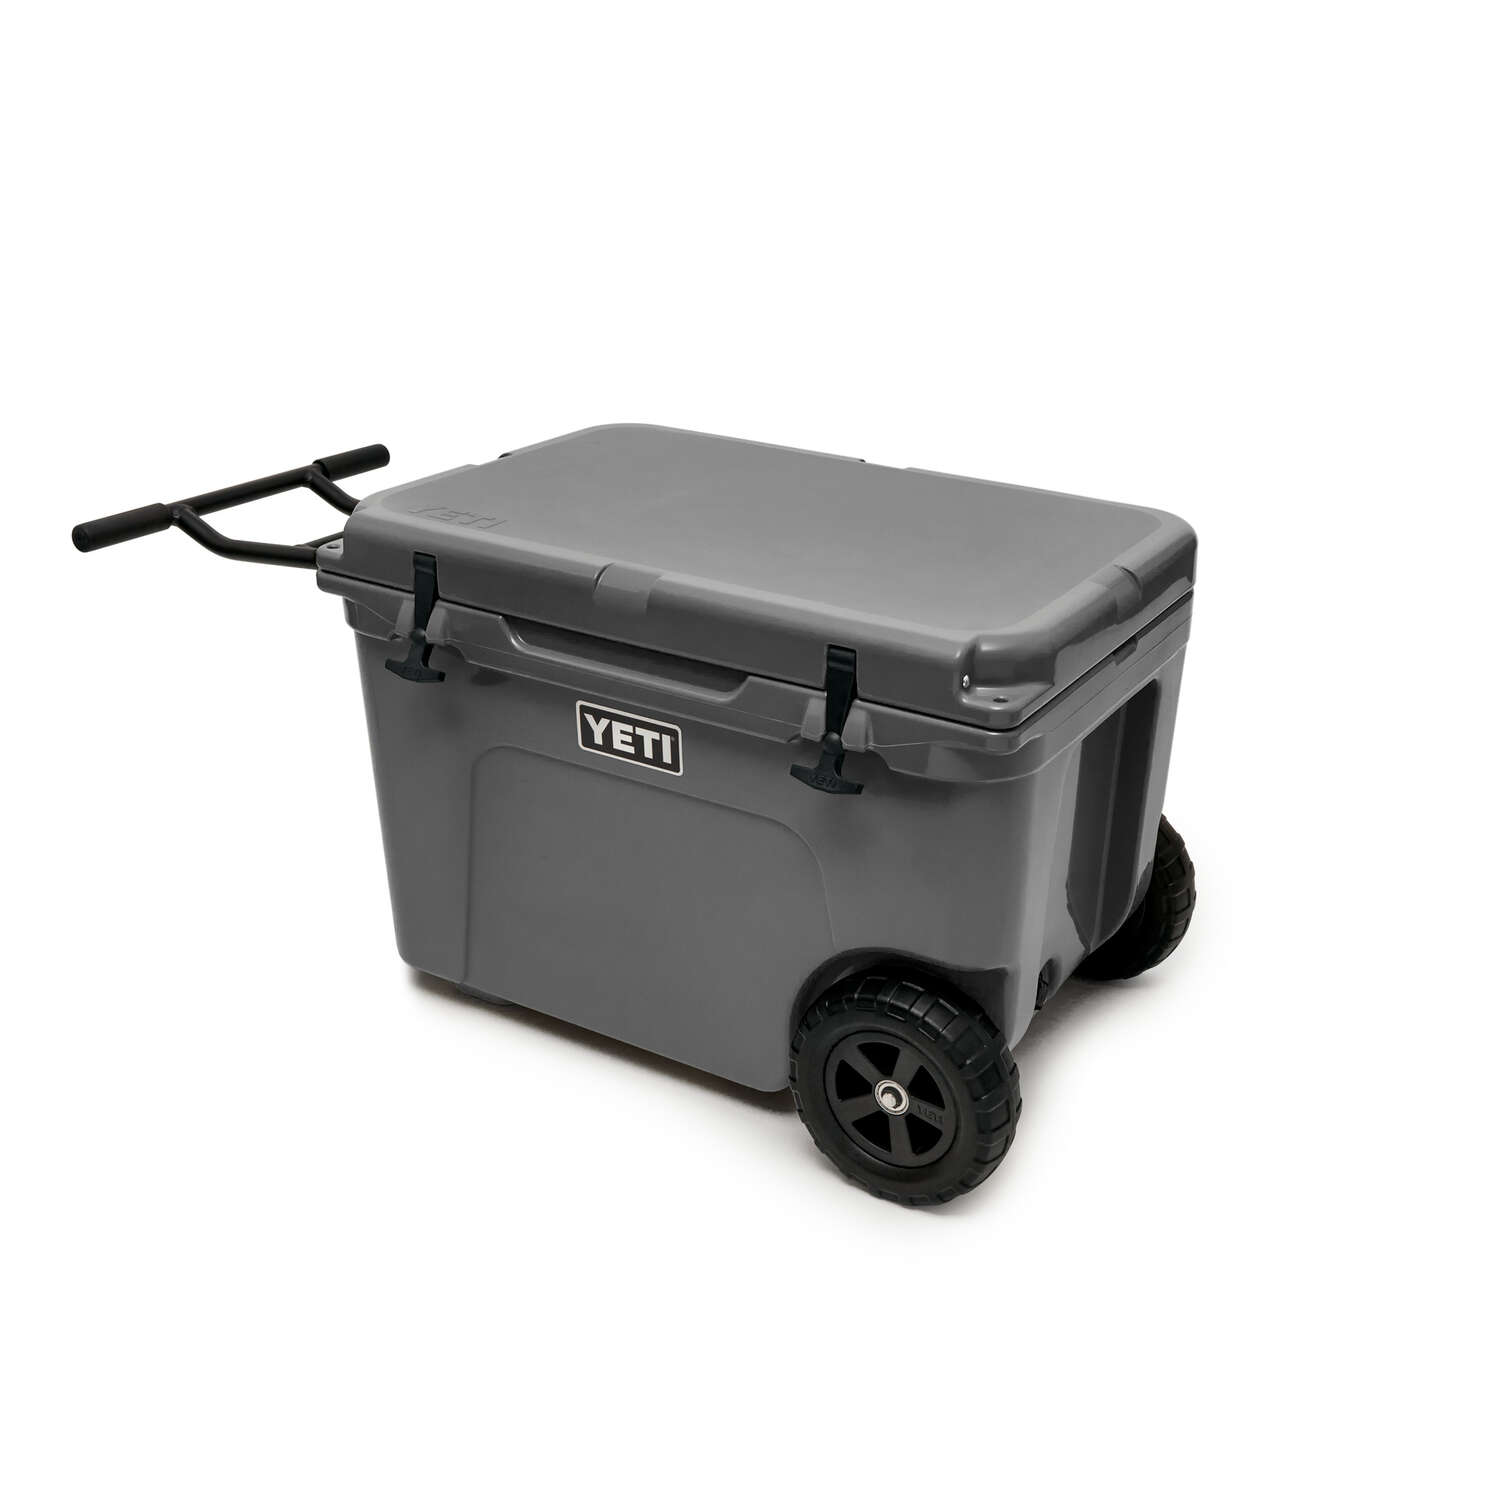 YETI  Tundra Haul  Roller Cooler  Charcoal